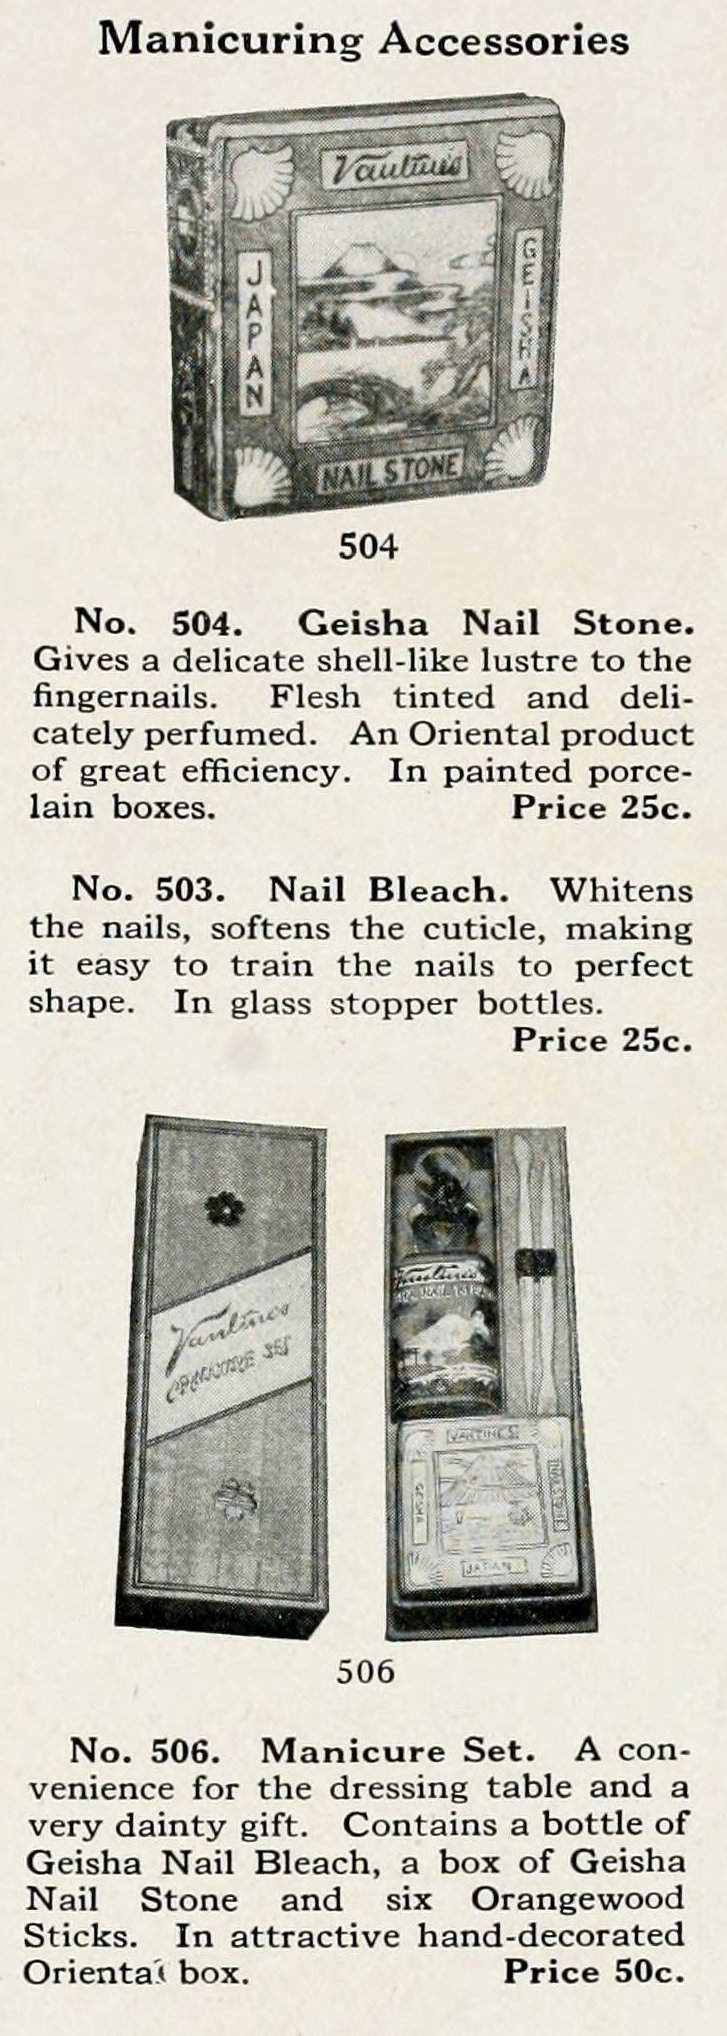 Drugstore products and manicure essentials from 1917